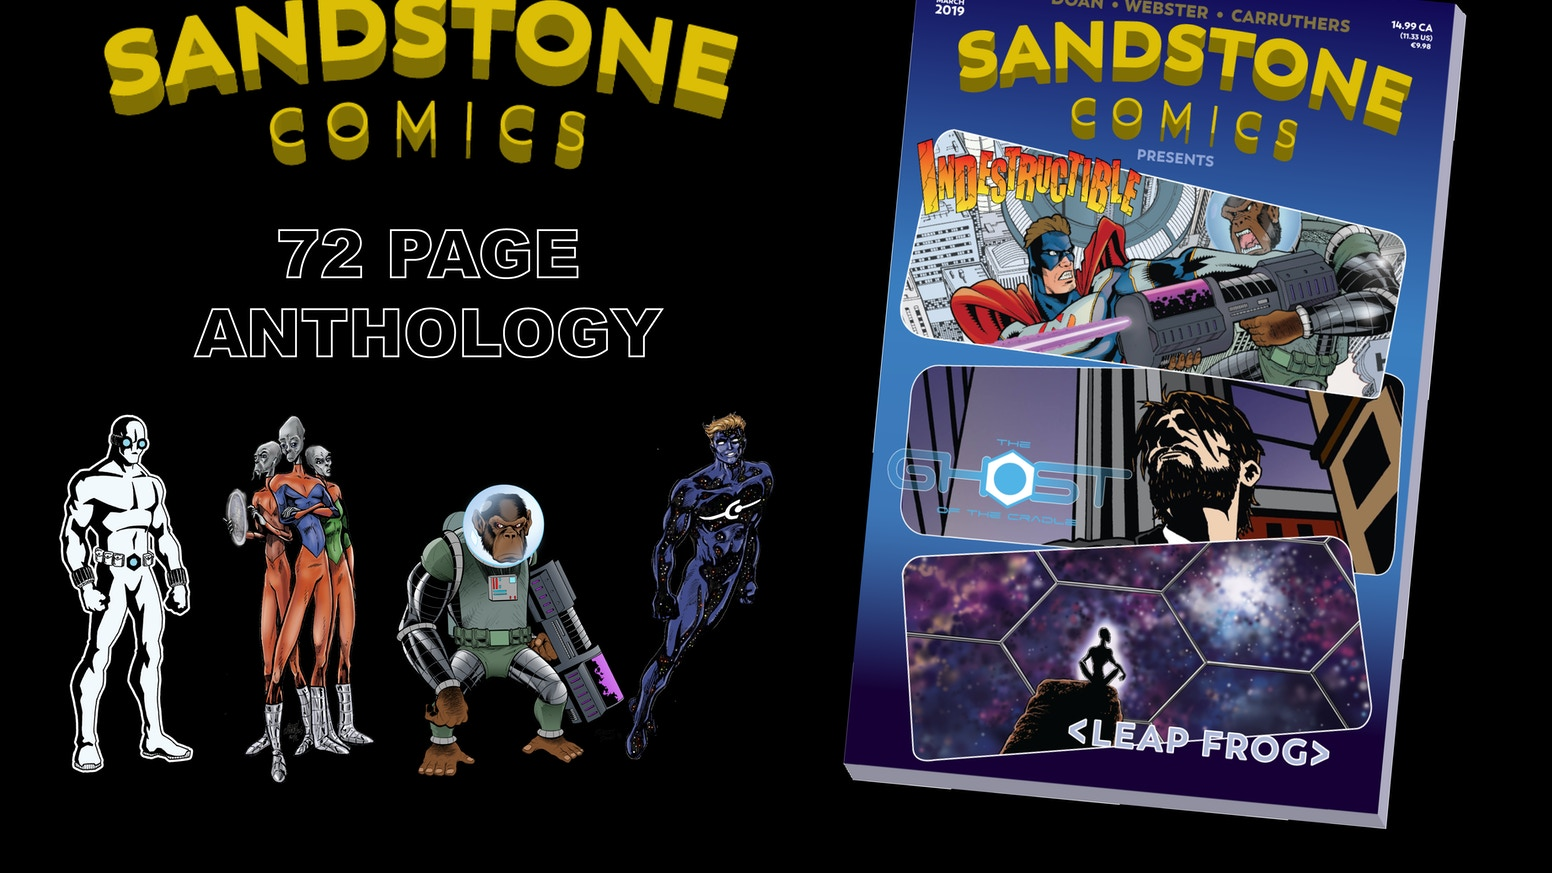 Sandstone Comics Presents is a 72 page anthology consisting of 3 original full length stories.